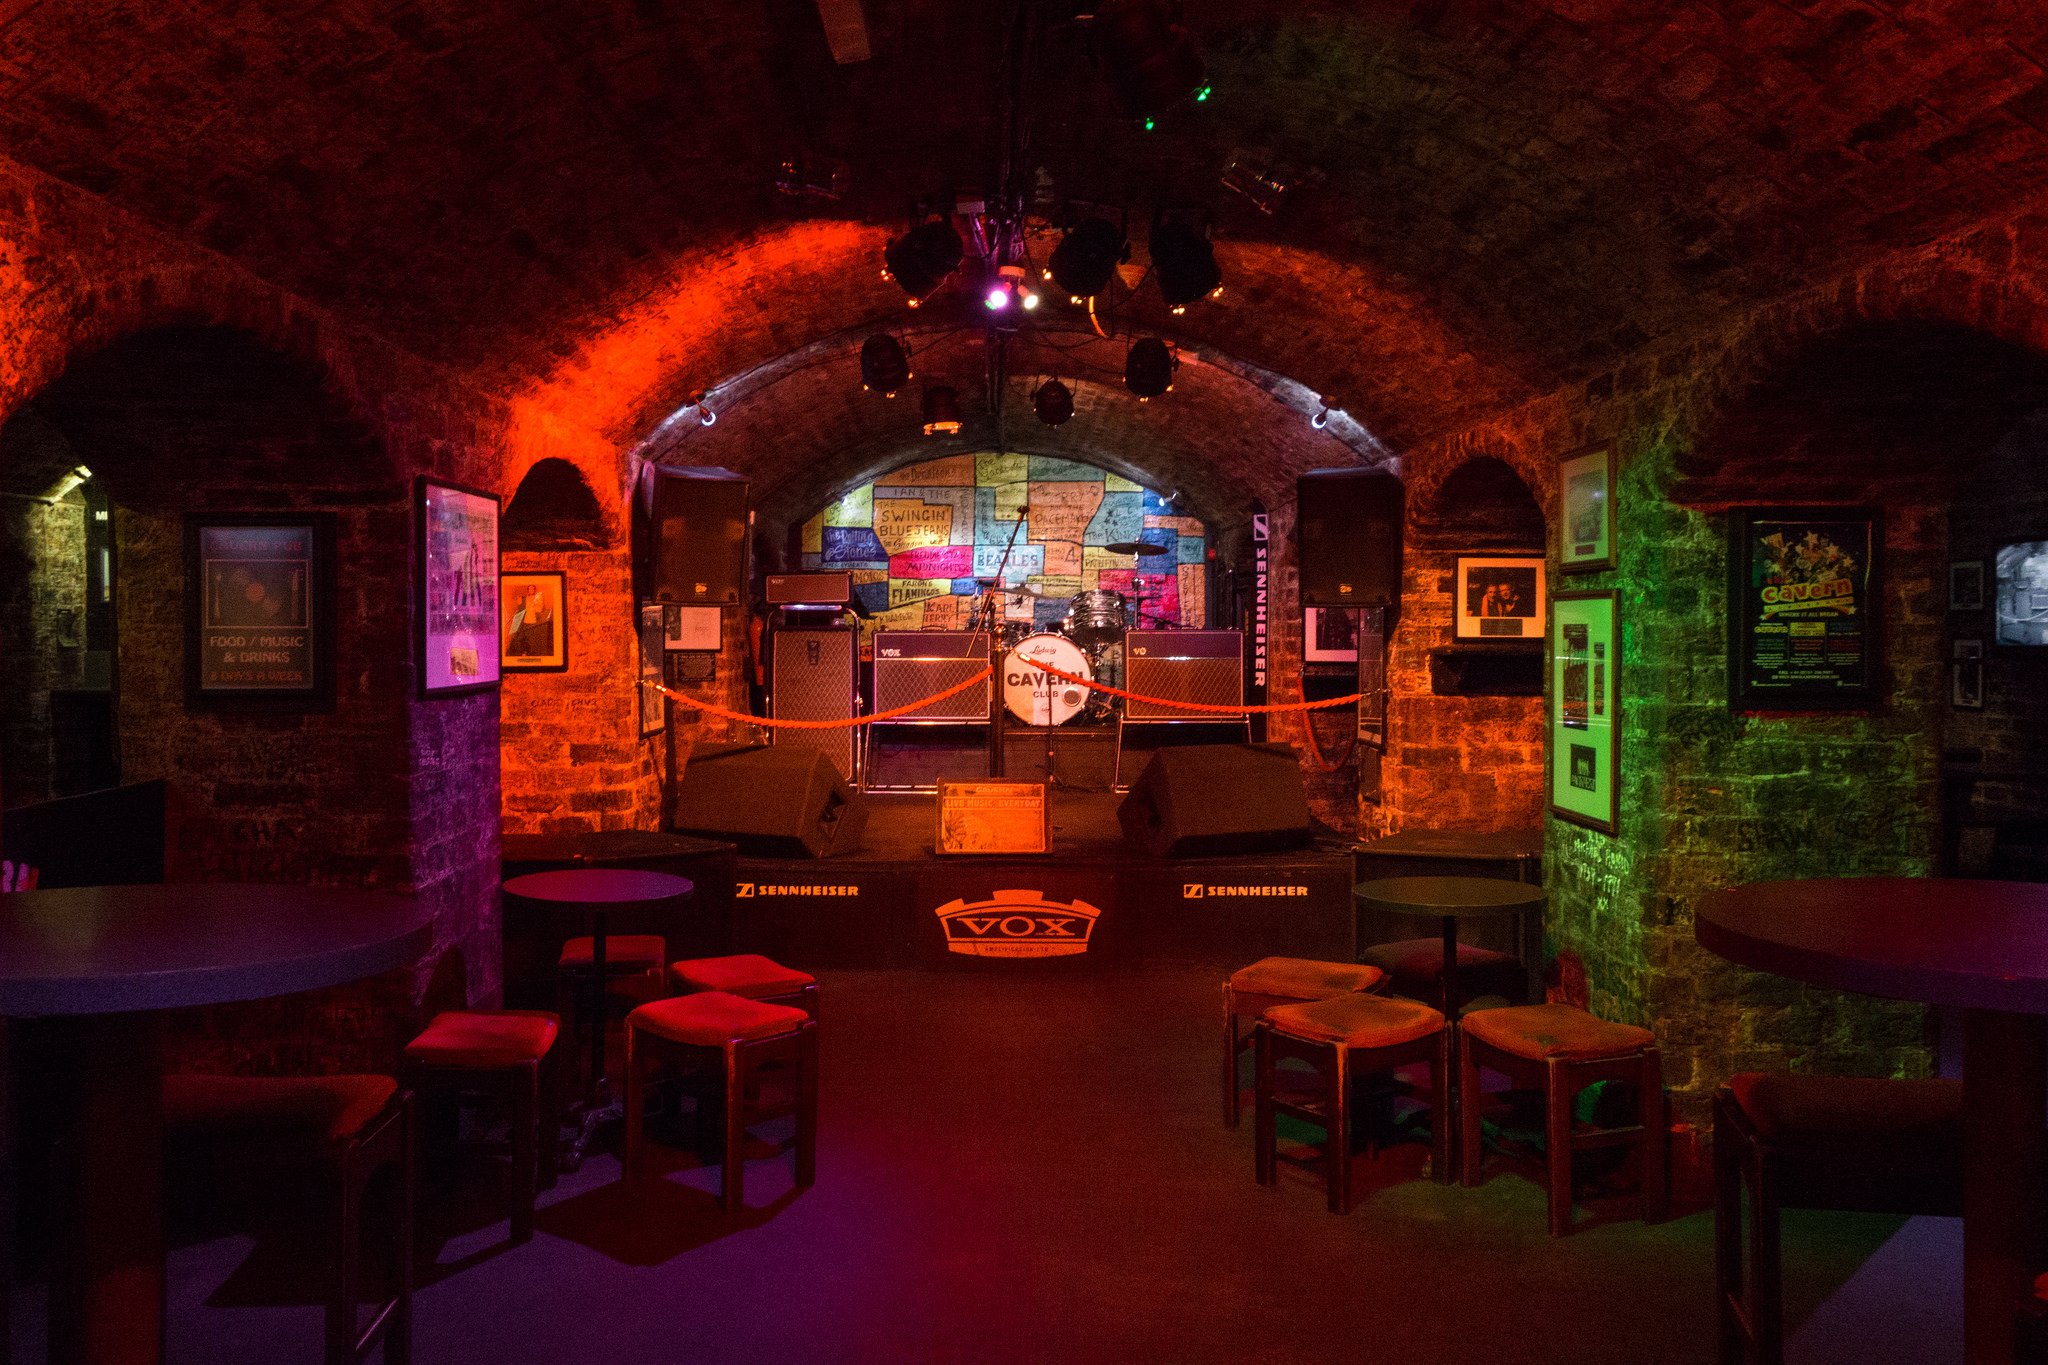 The Beatles at The Cavern Club - Wikipedia Pictures of the cavern club liverpool